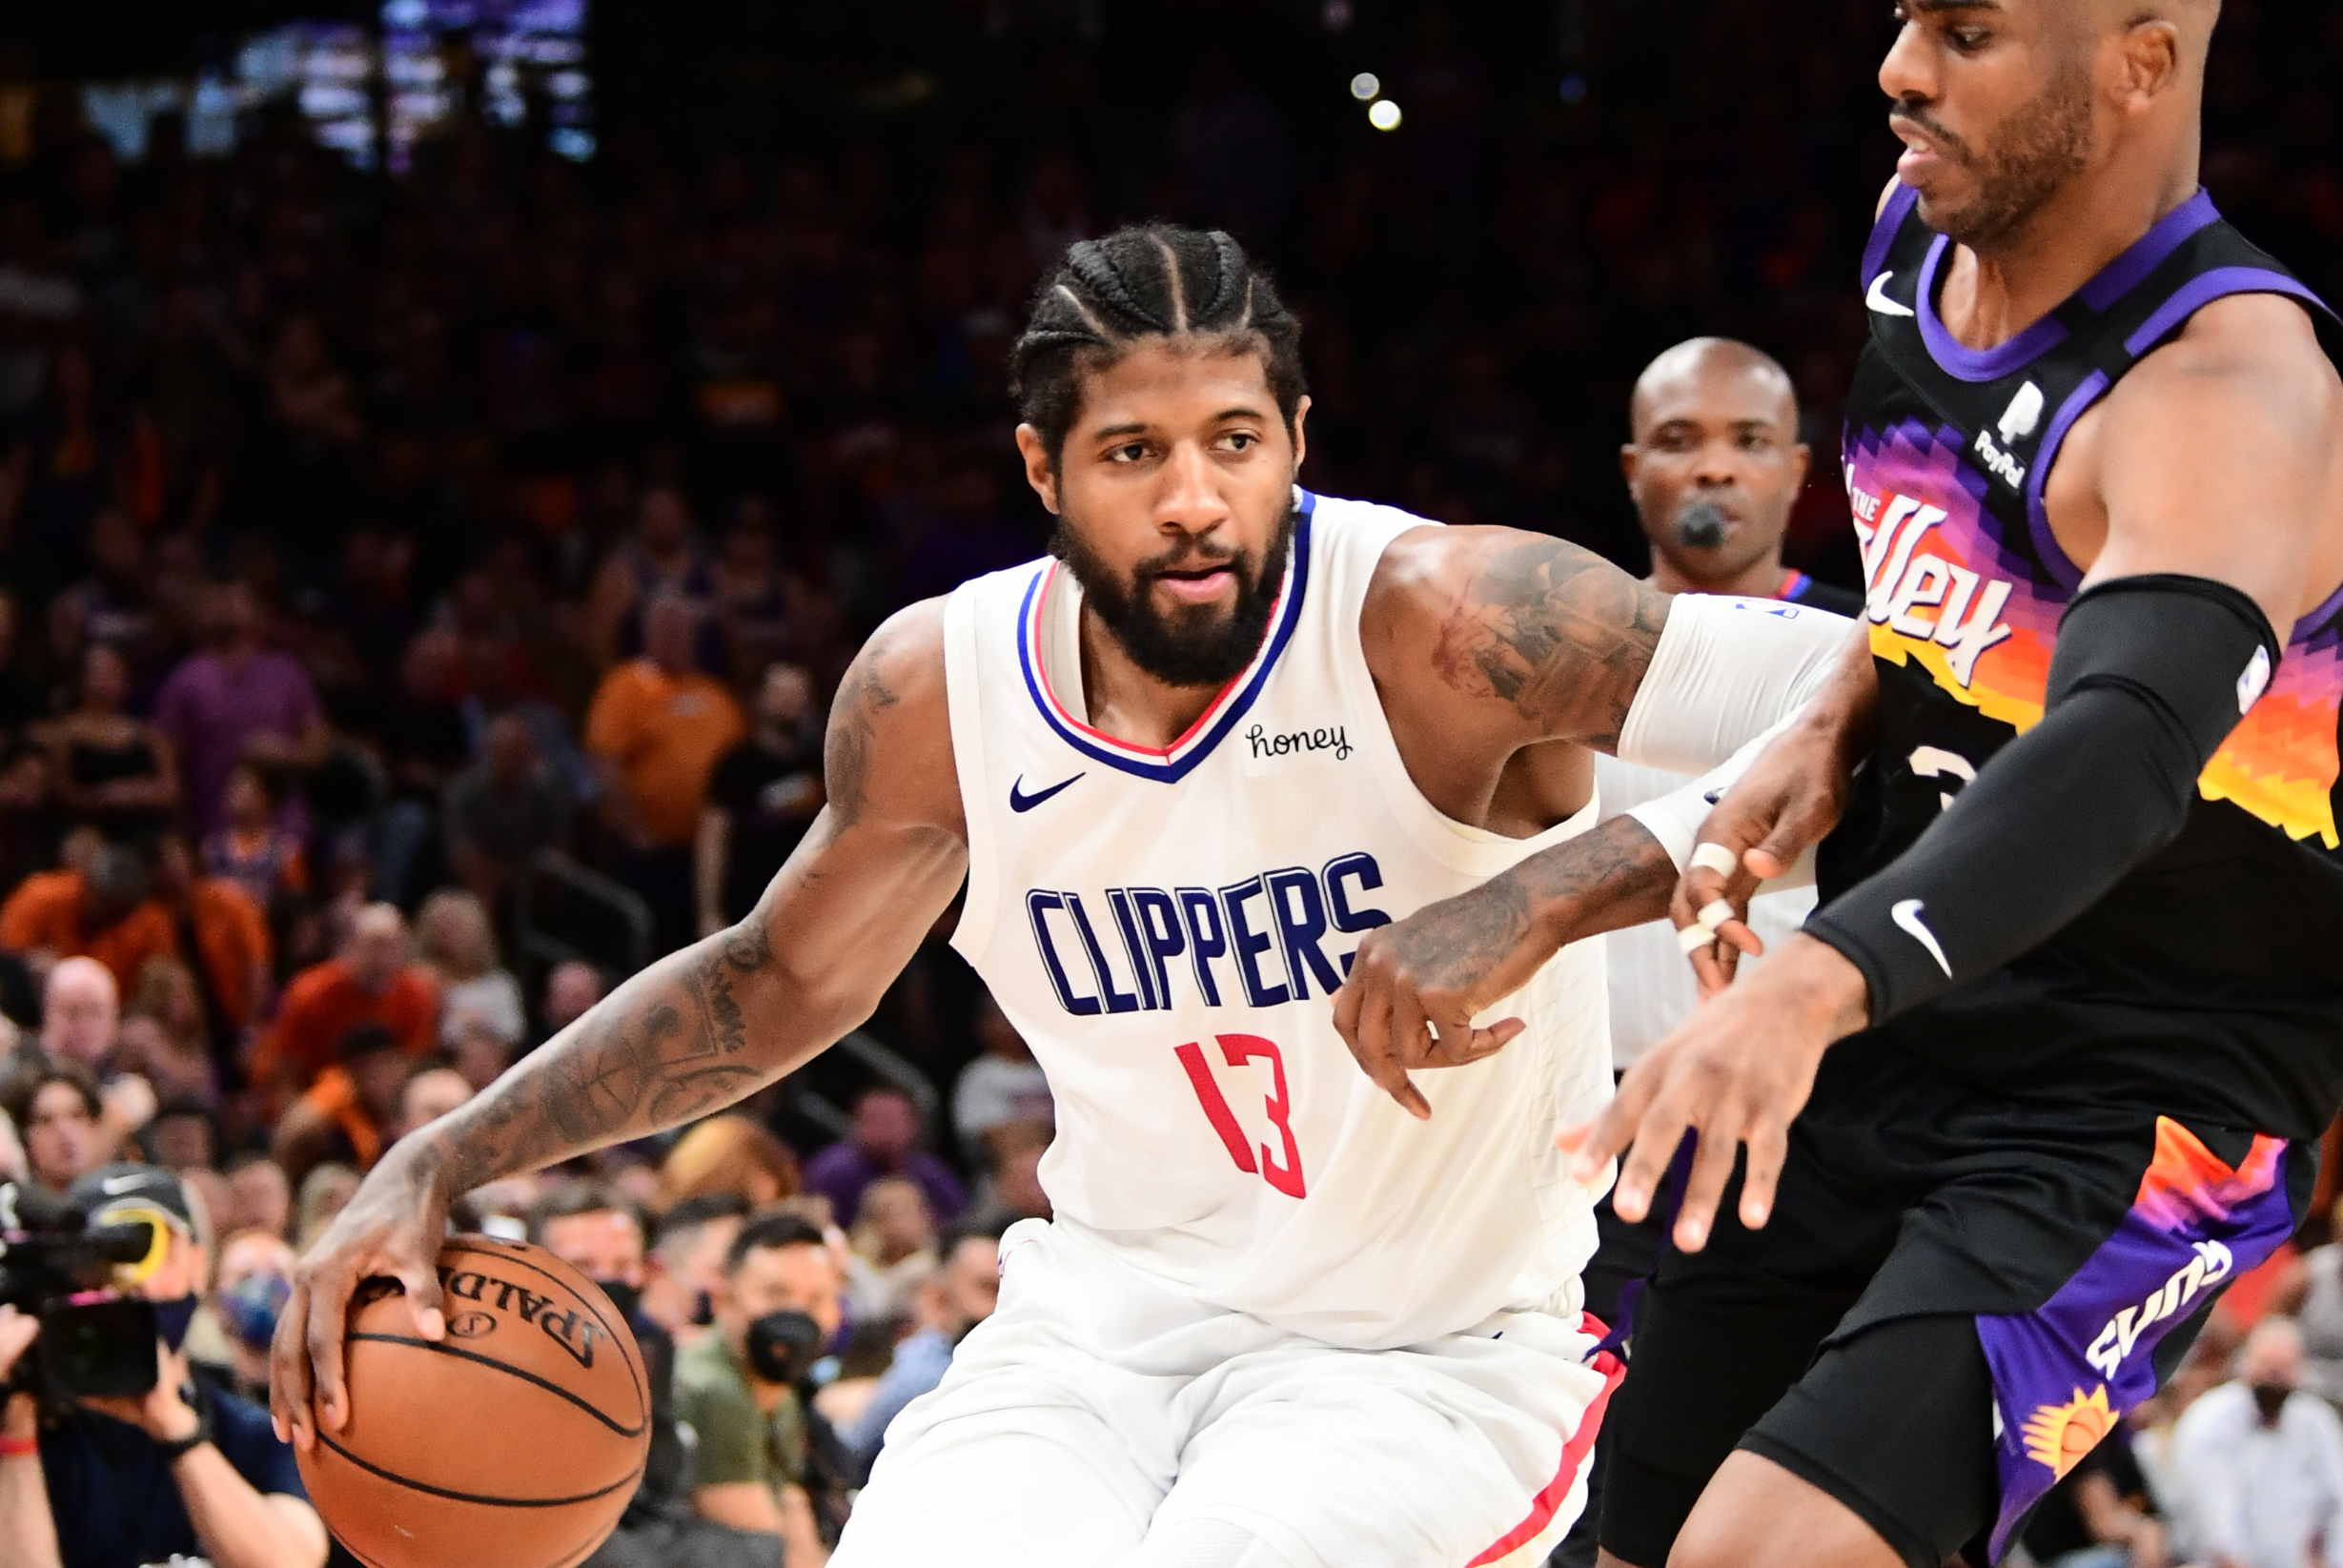 George, Clippers keep Suns at bay to force Game 6